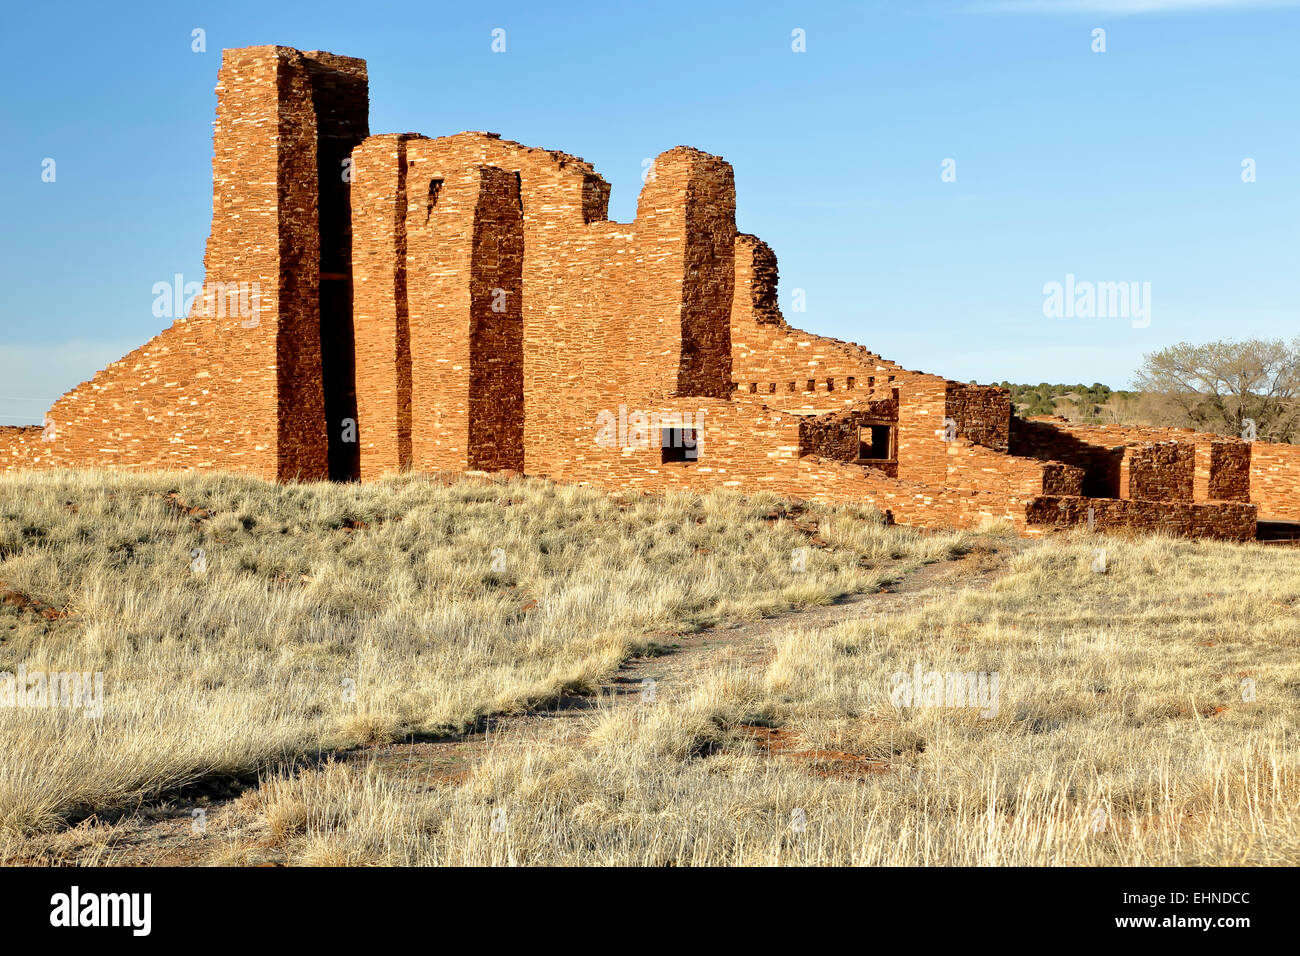 Church ruins, Salinas Pueblo Missions National Monument, New Mexico USA - Stock Image